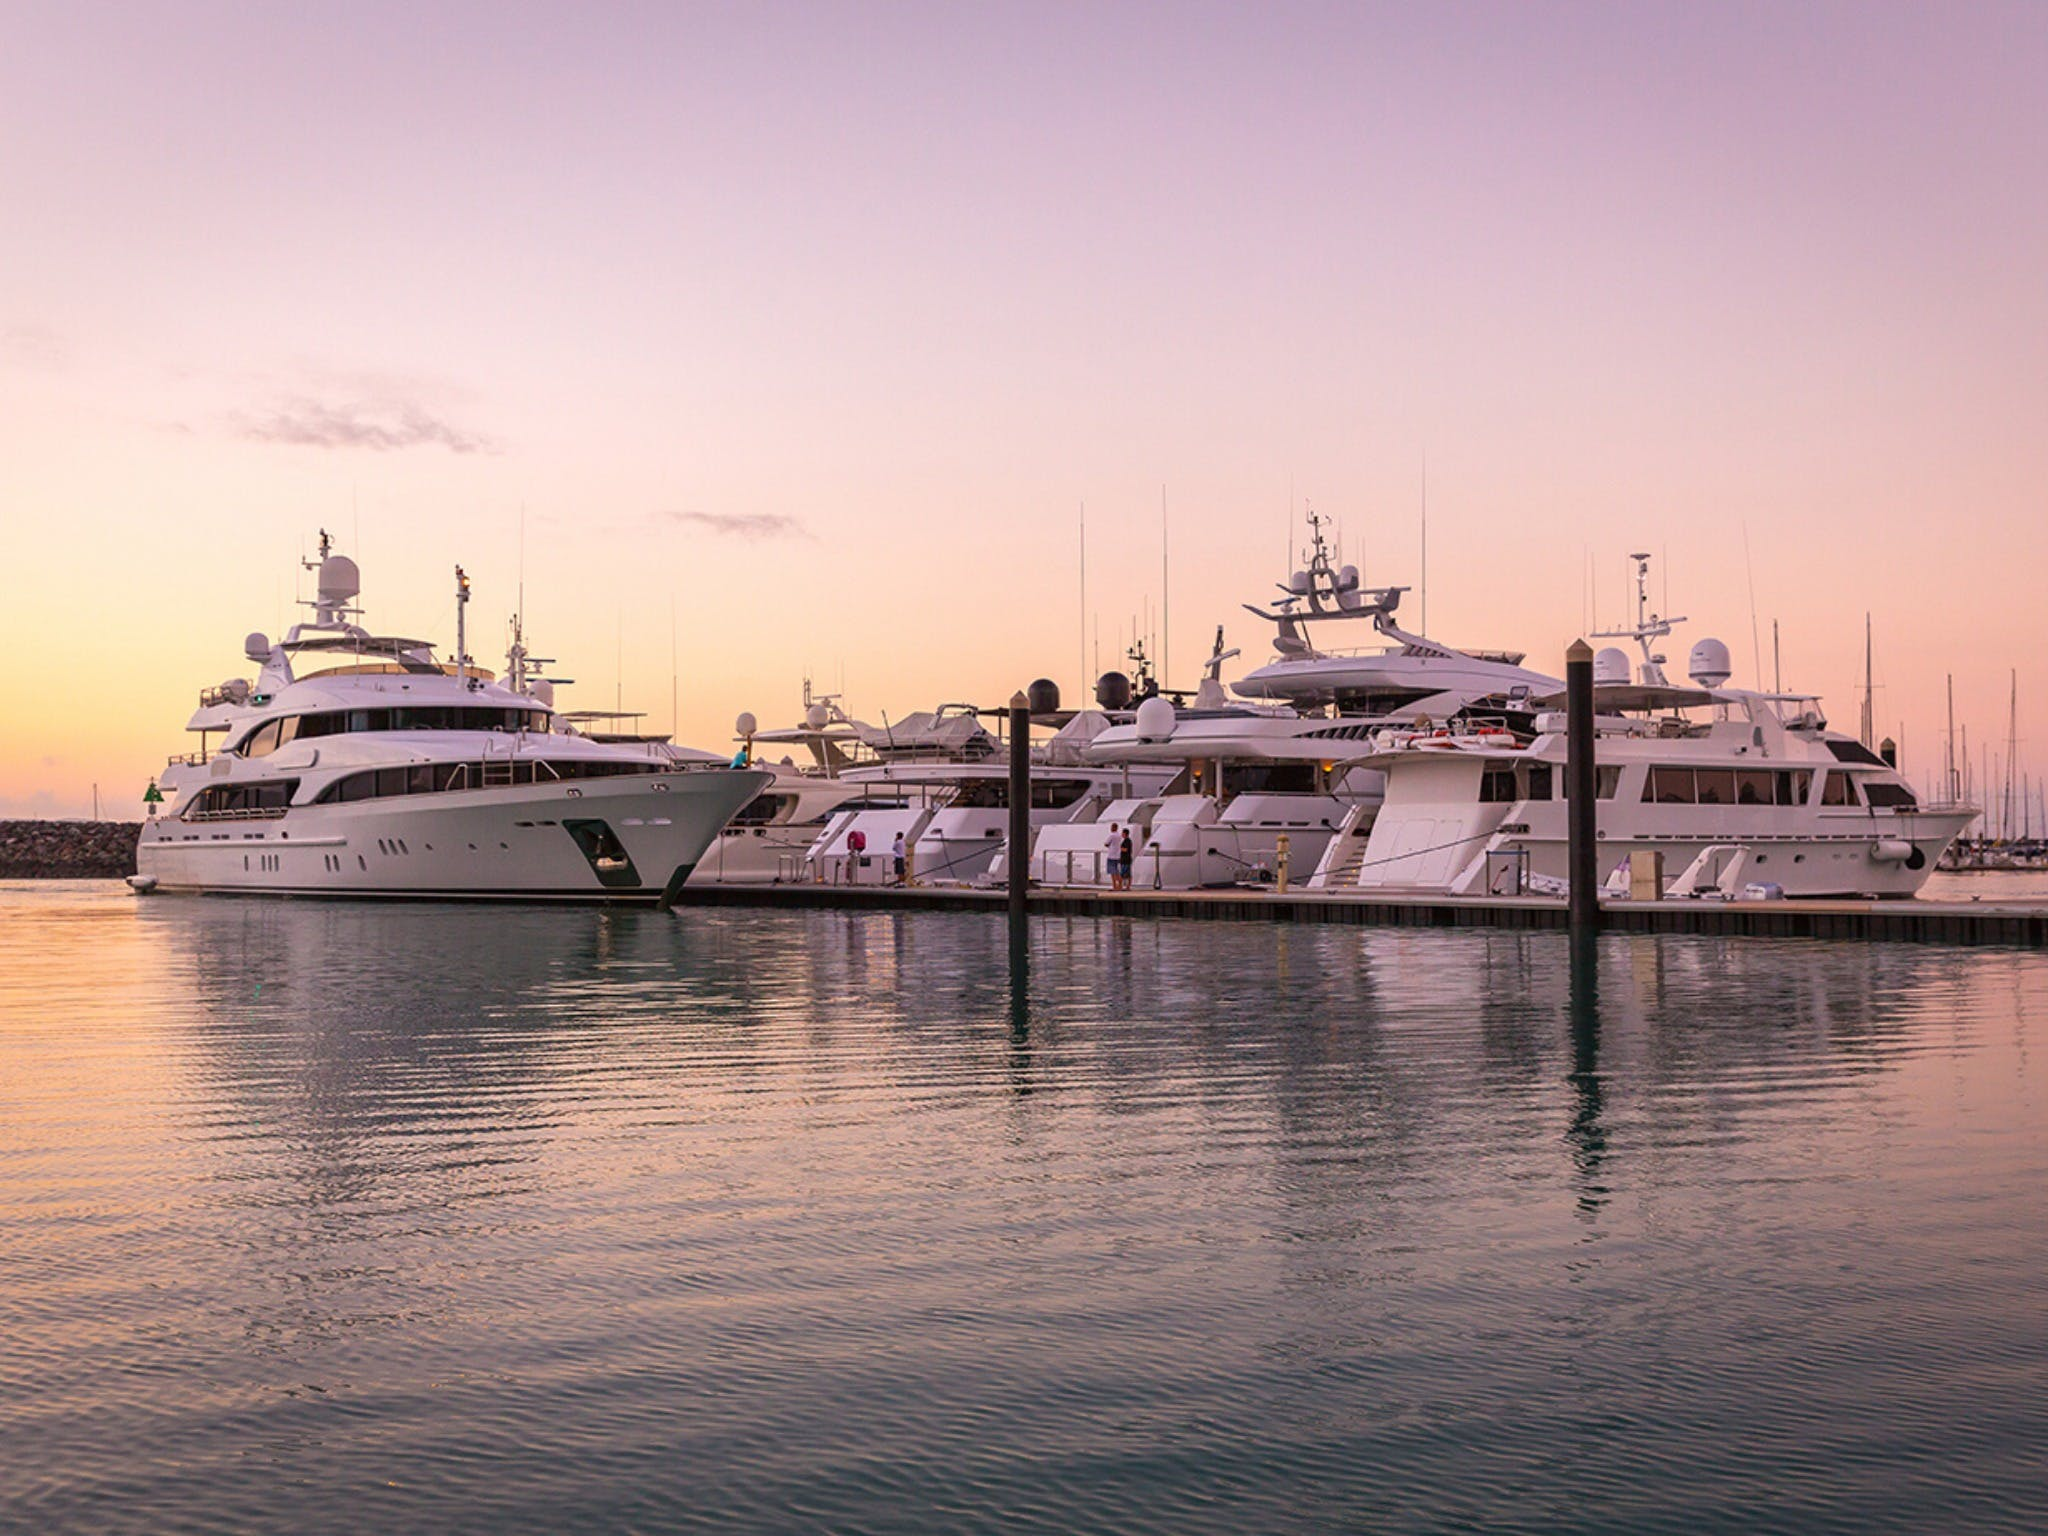 Australian Superyacht Rendezvous - Great Barrier Reef edition - Accommodation Whitsundays